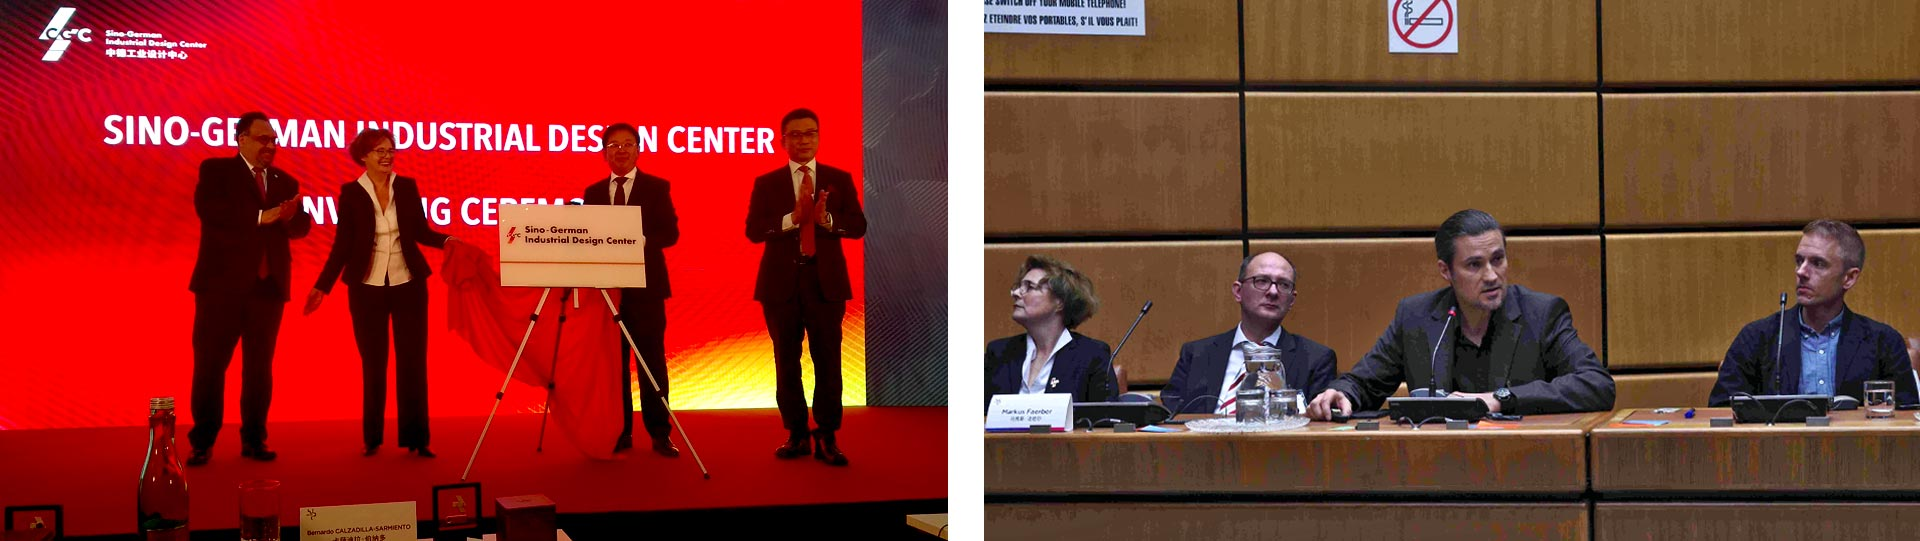 UNIDO SIno German Industrial Design Conference